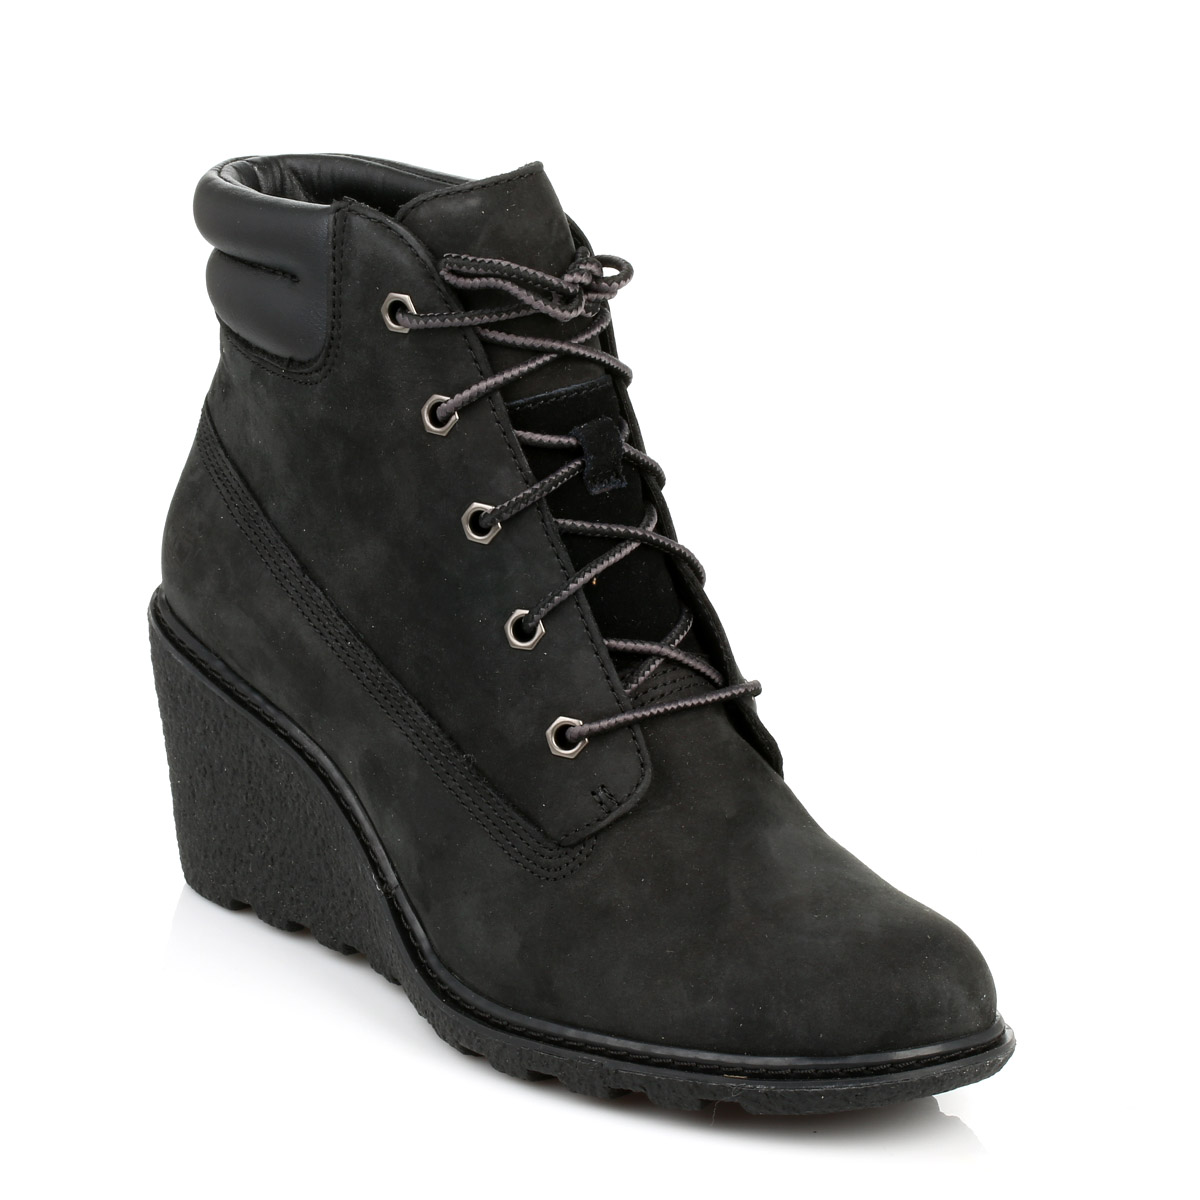 Perfect  Boots  Daniel  Daniel Veta Black Leather Women39s Wedge Ankle